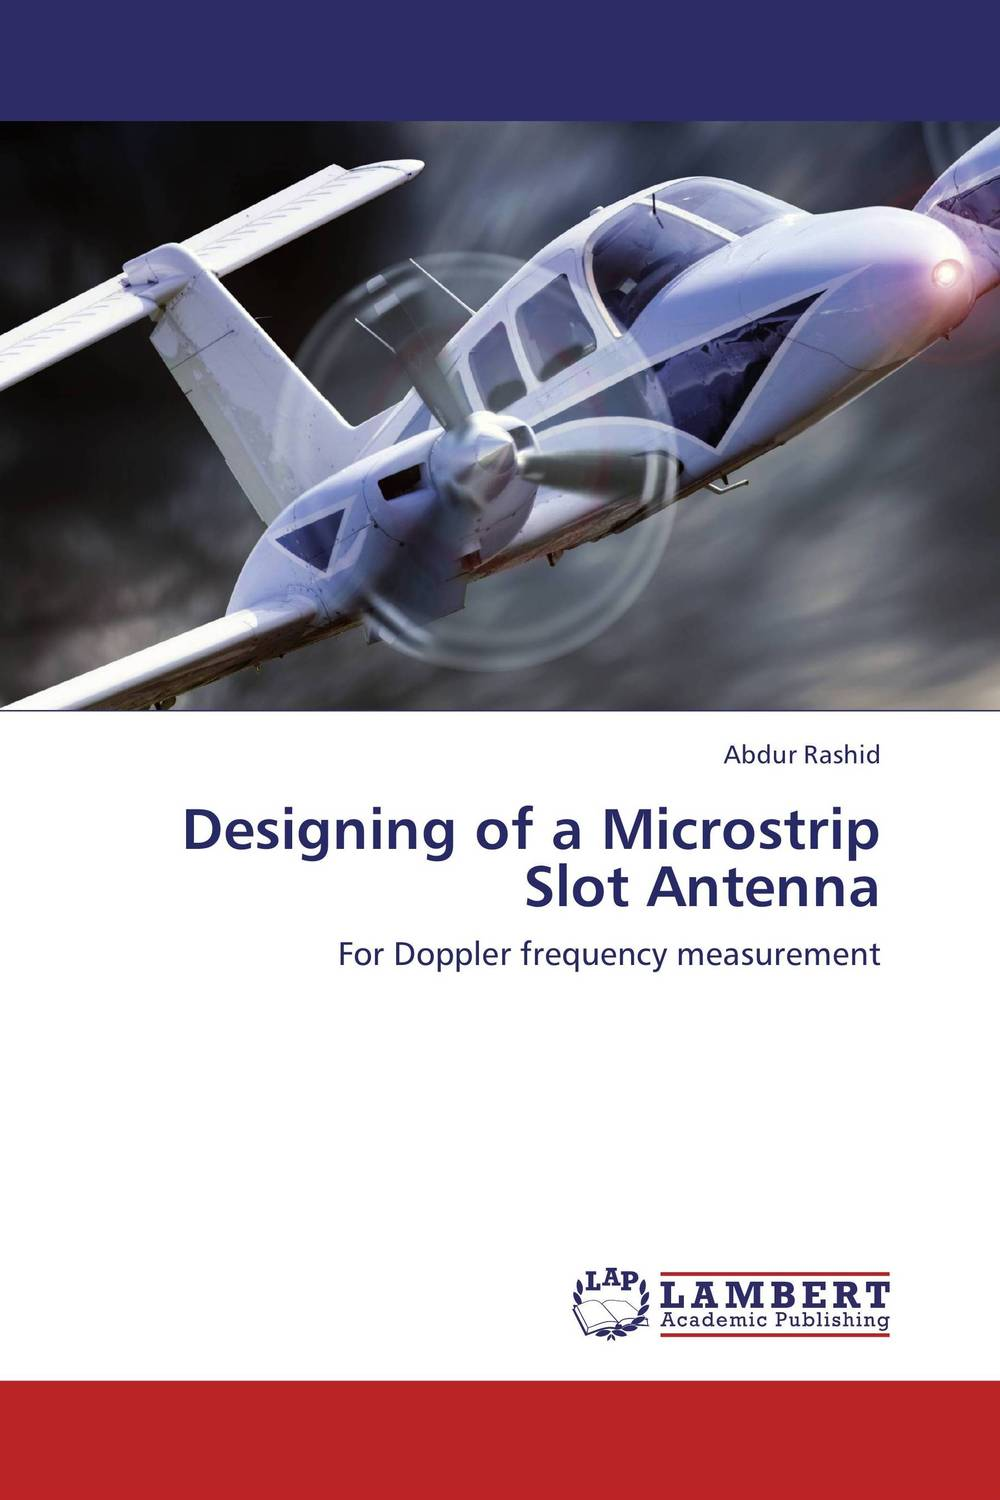 Designing of a Microstrip Slot Antenna